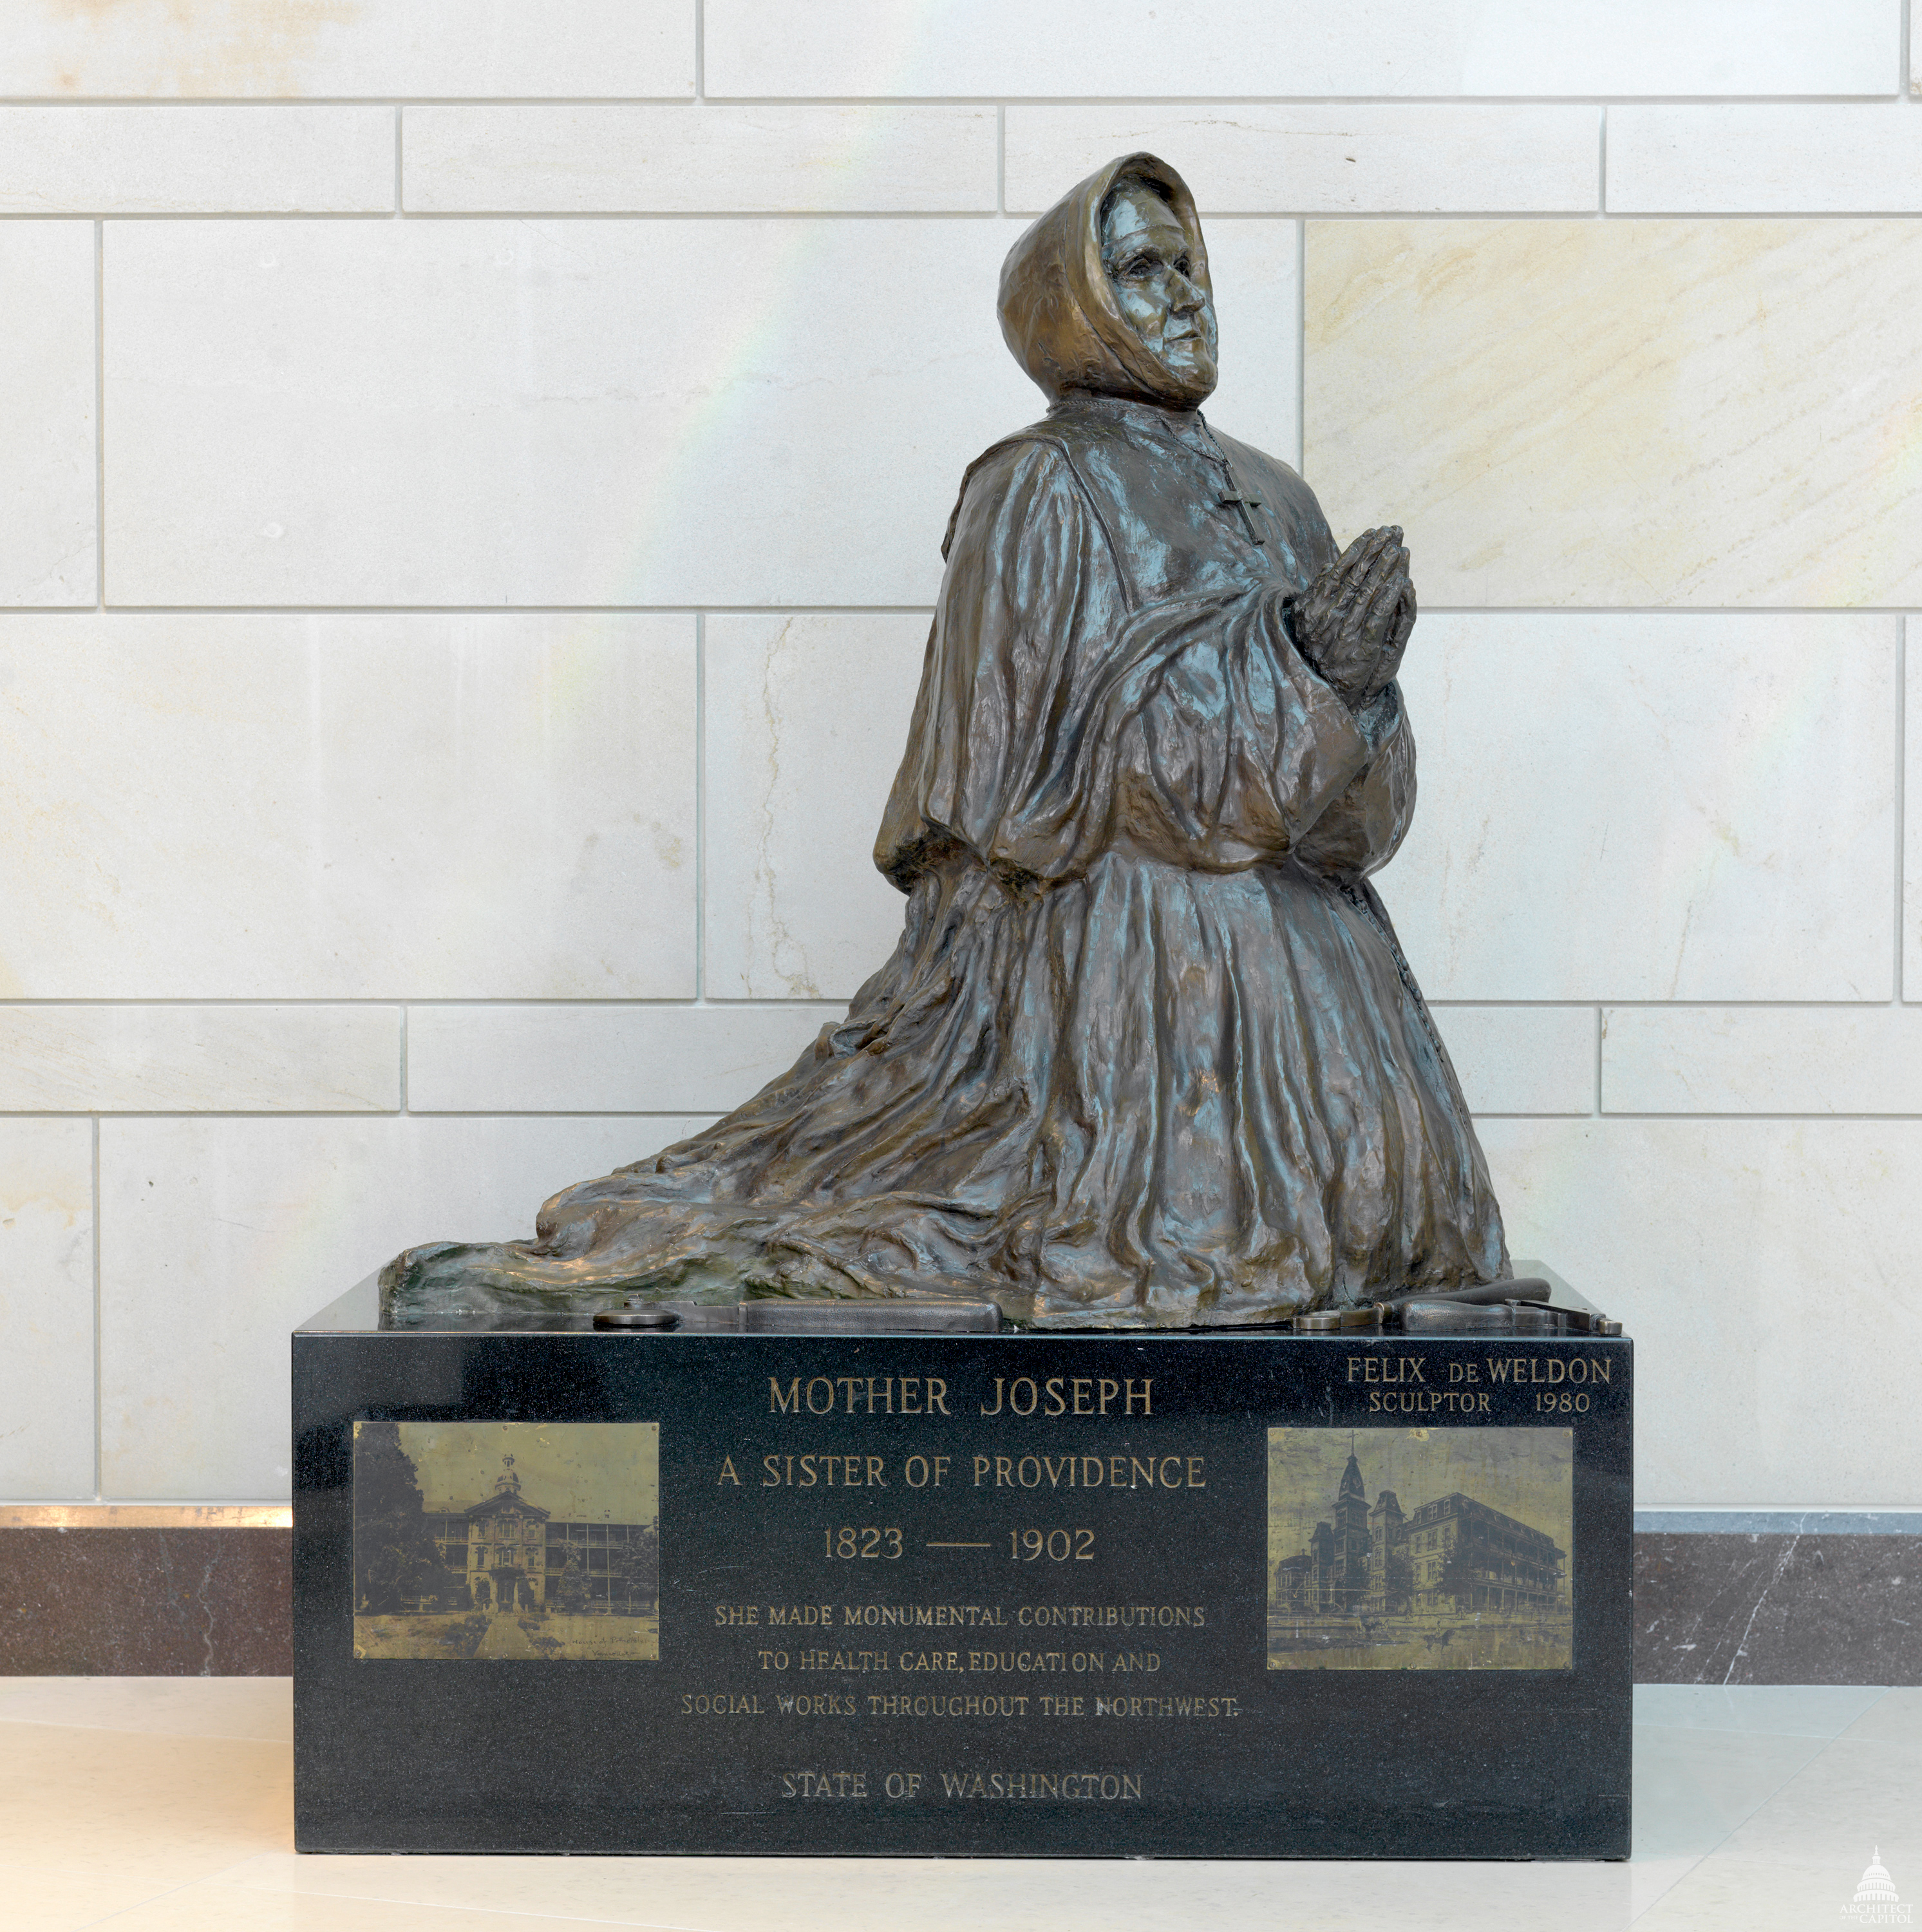 Mother Joseph statue in Washington